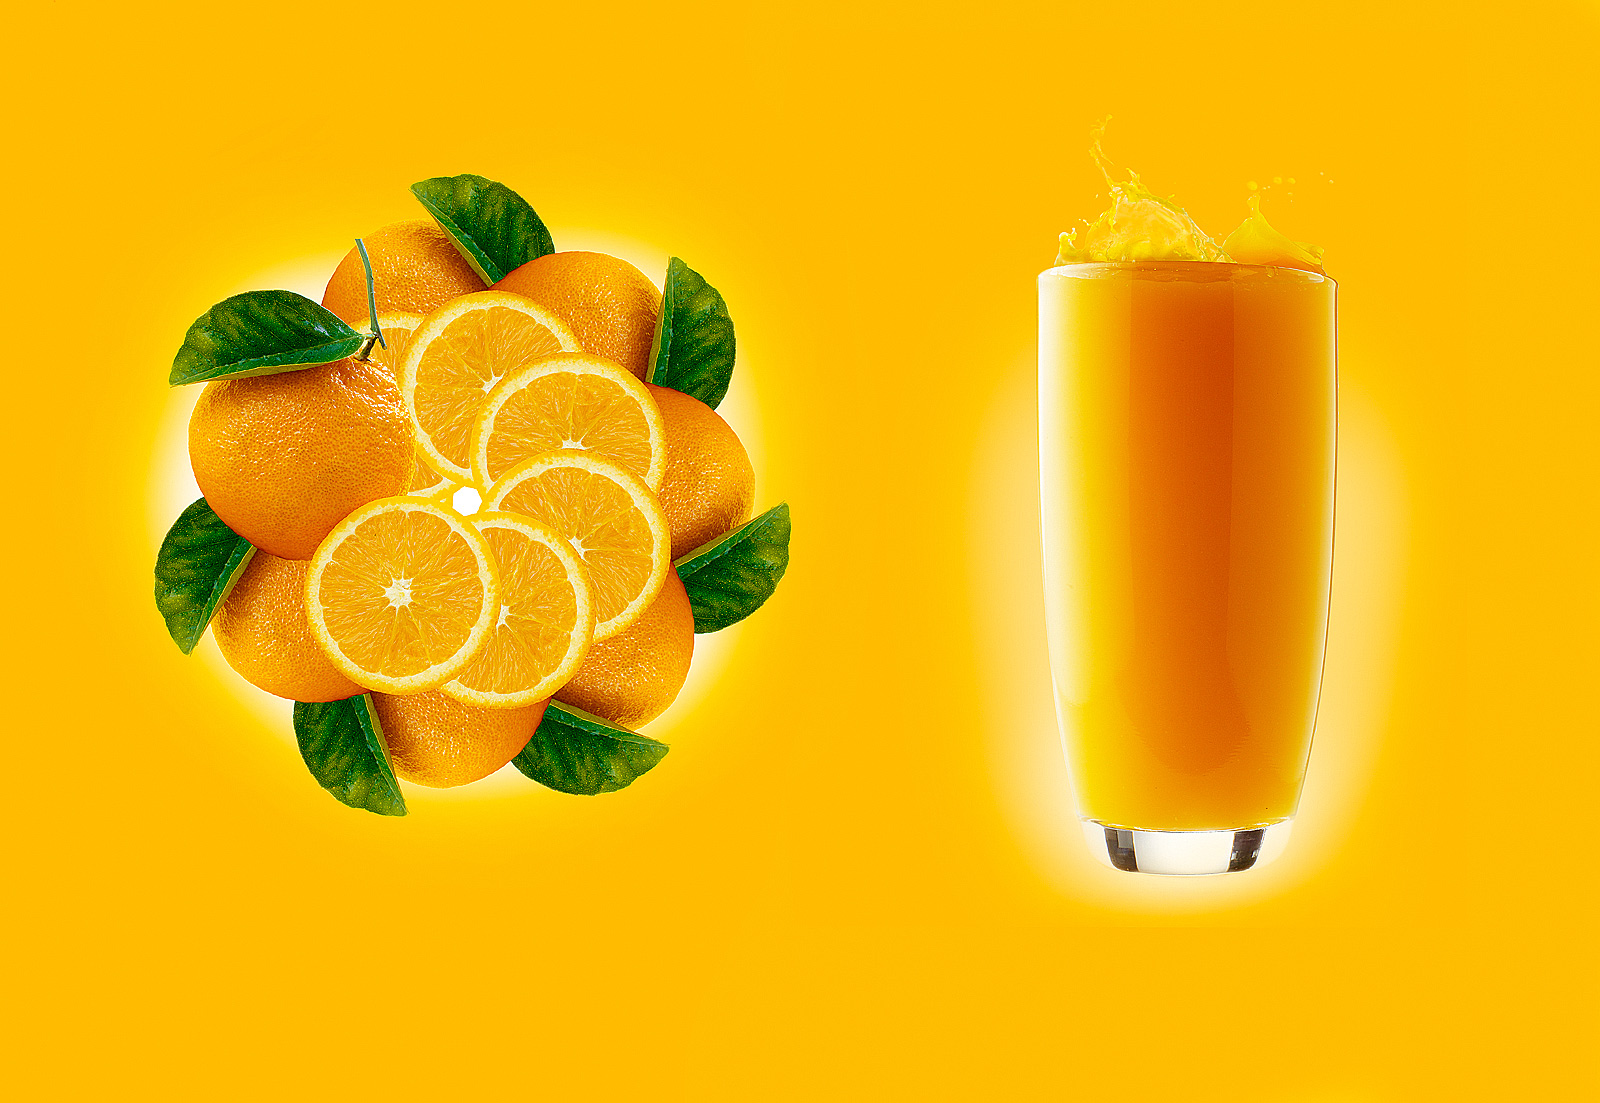 OJ- Orange juice- Vodka orange- Henrique Du Tiel